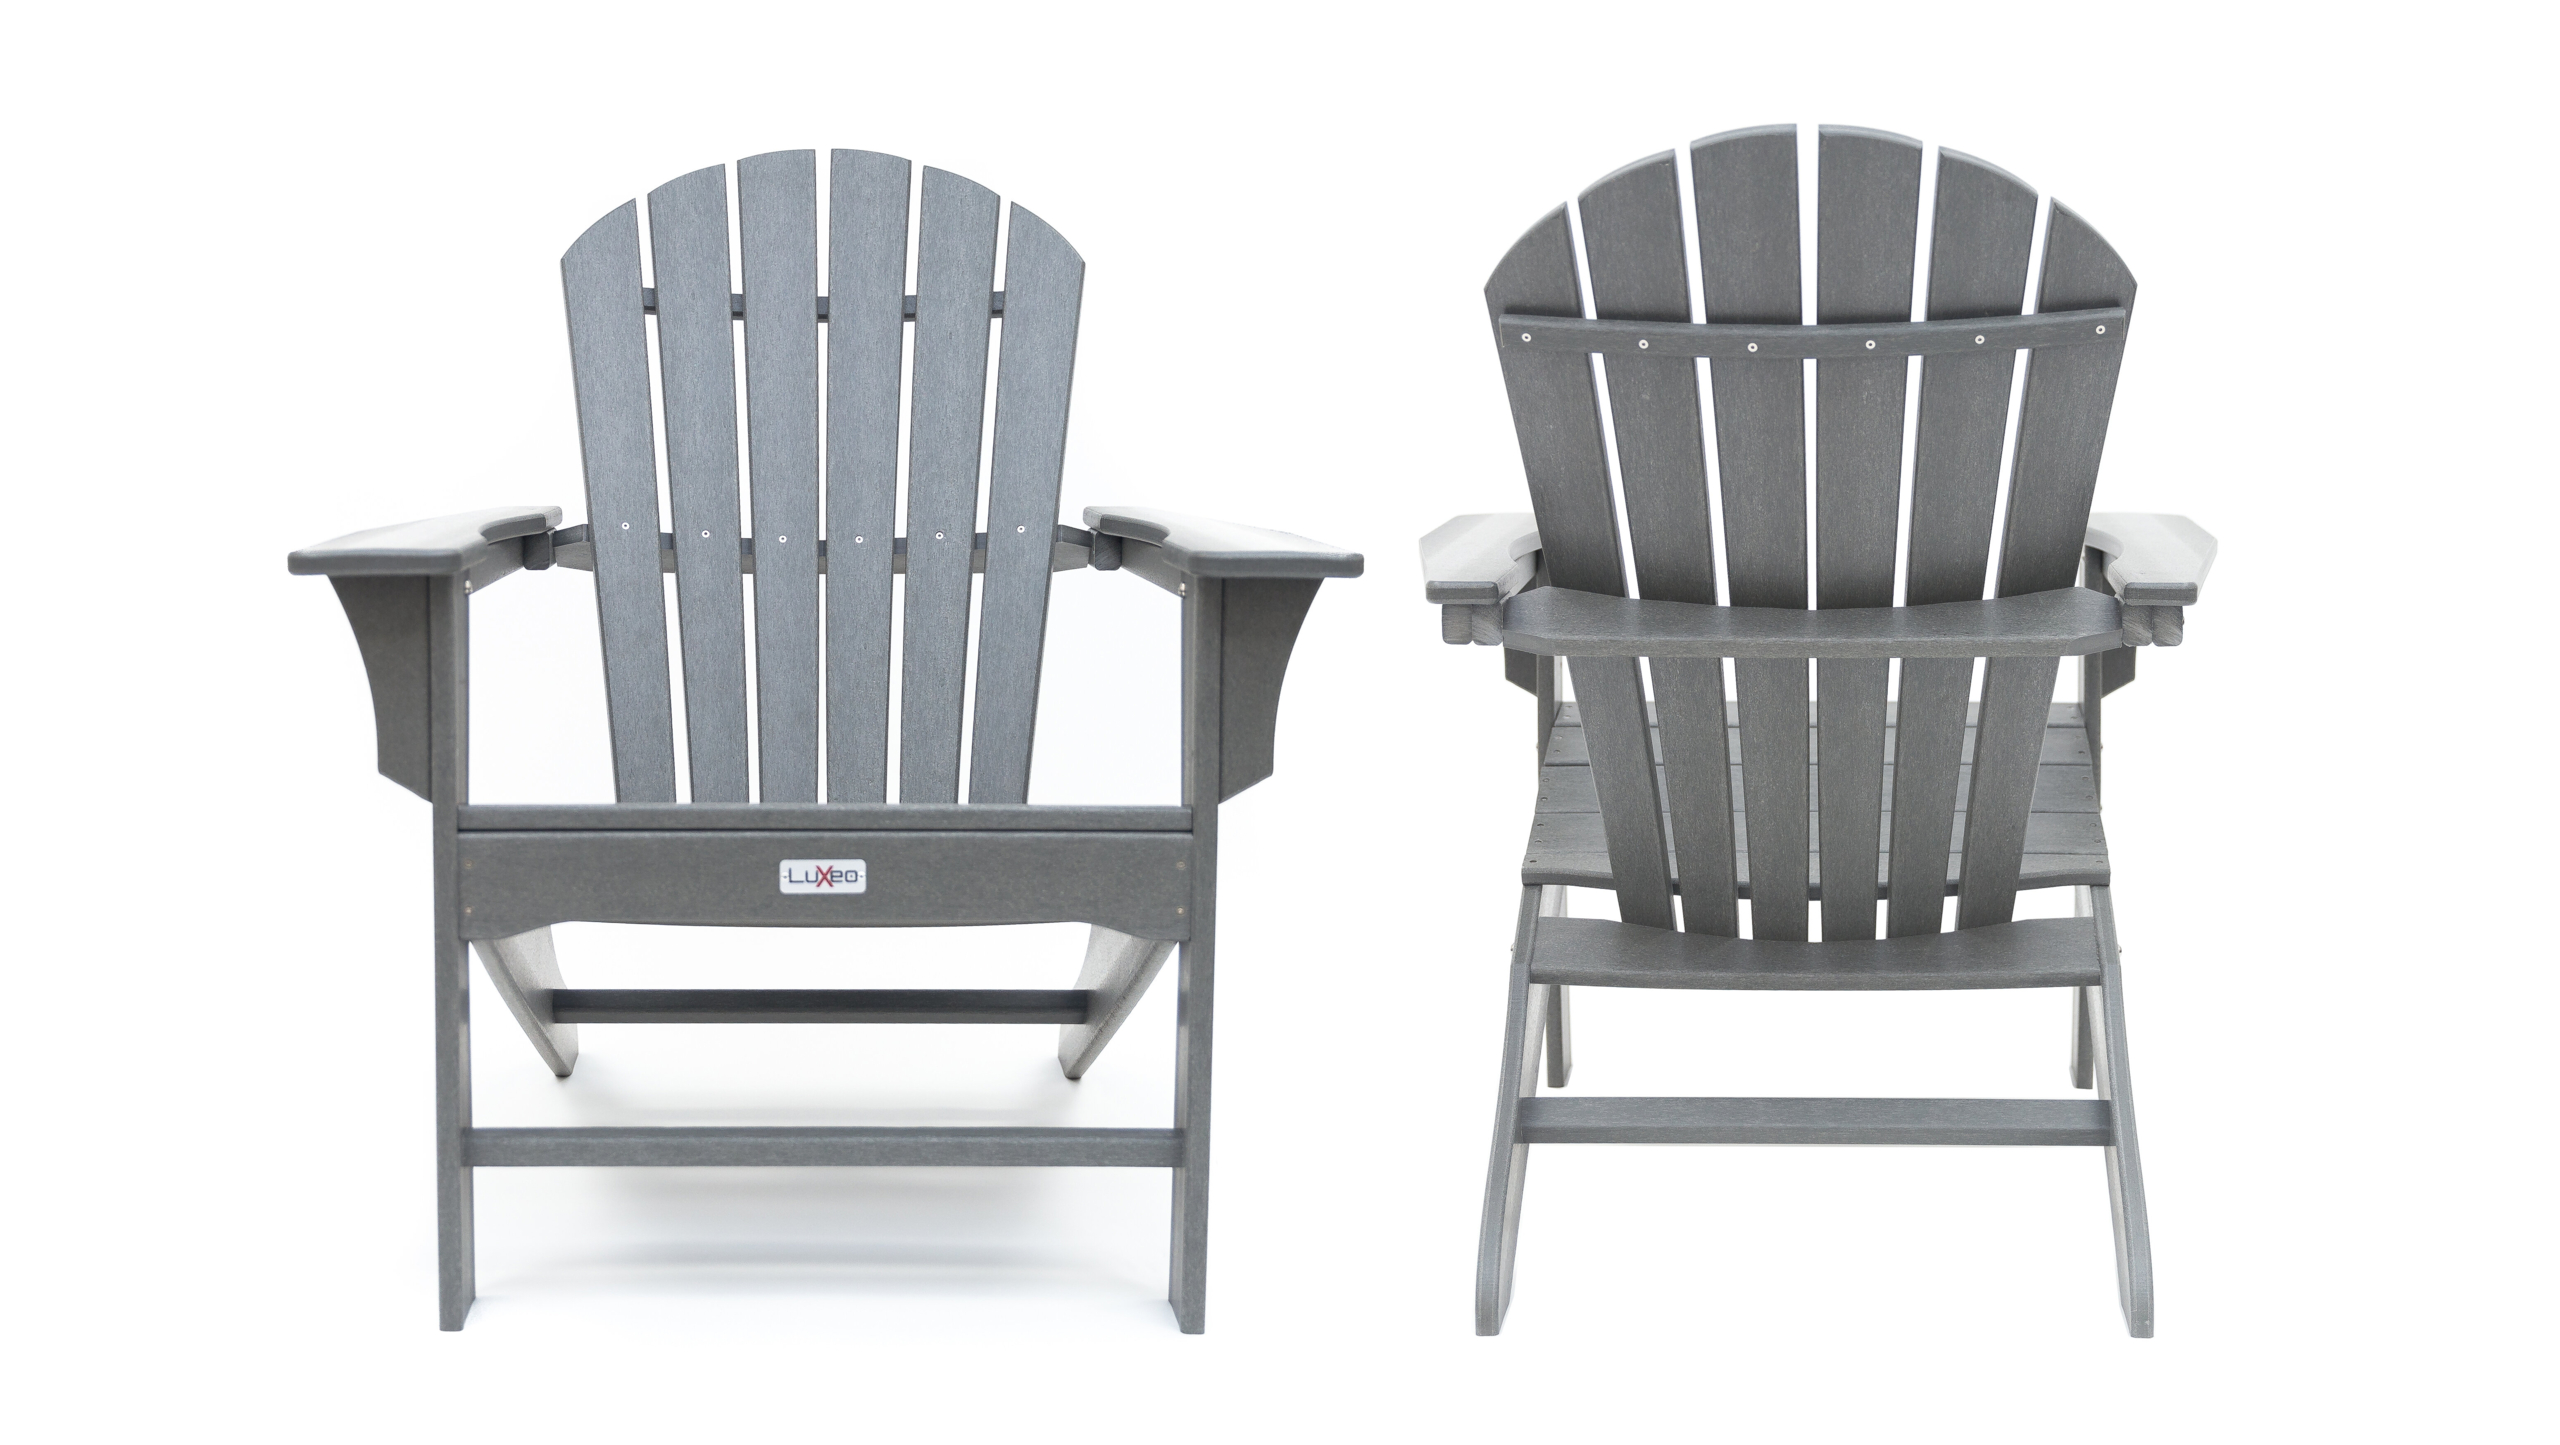 big daddy adirondack chair posture exercises plastic chairs depot yhome polywoodreg recycled image of